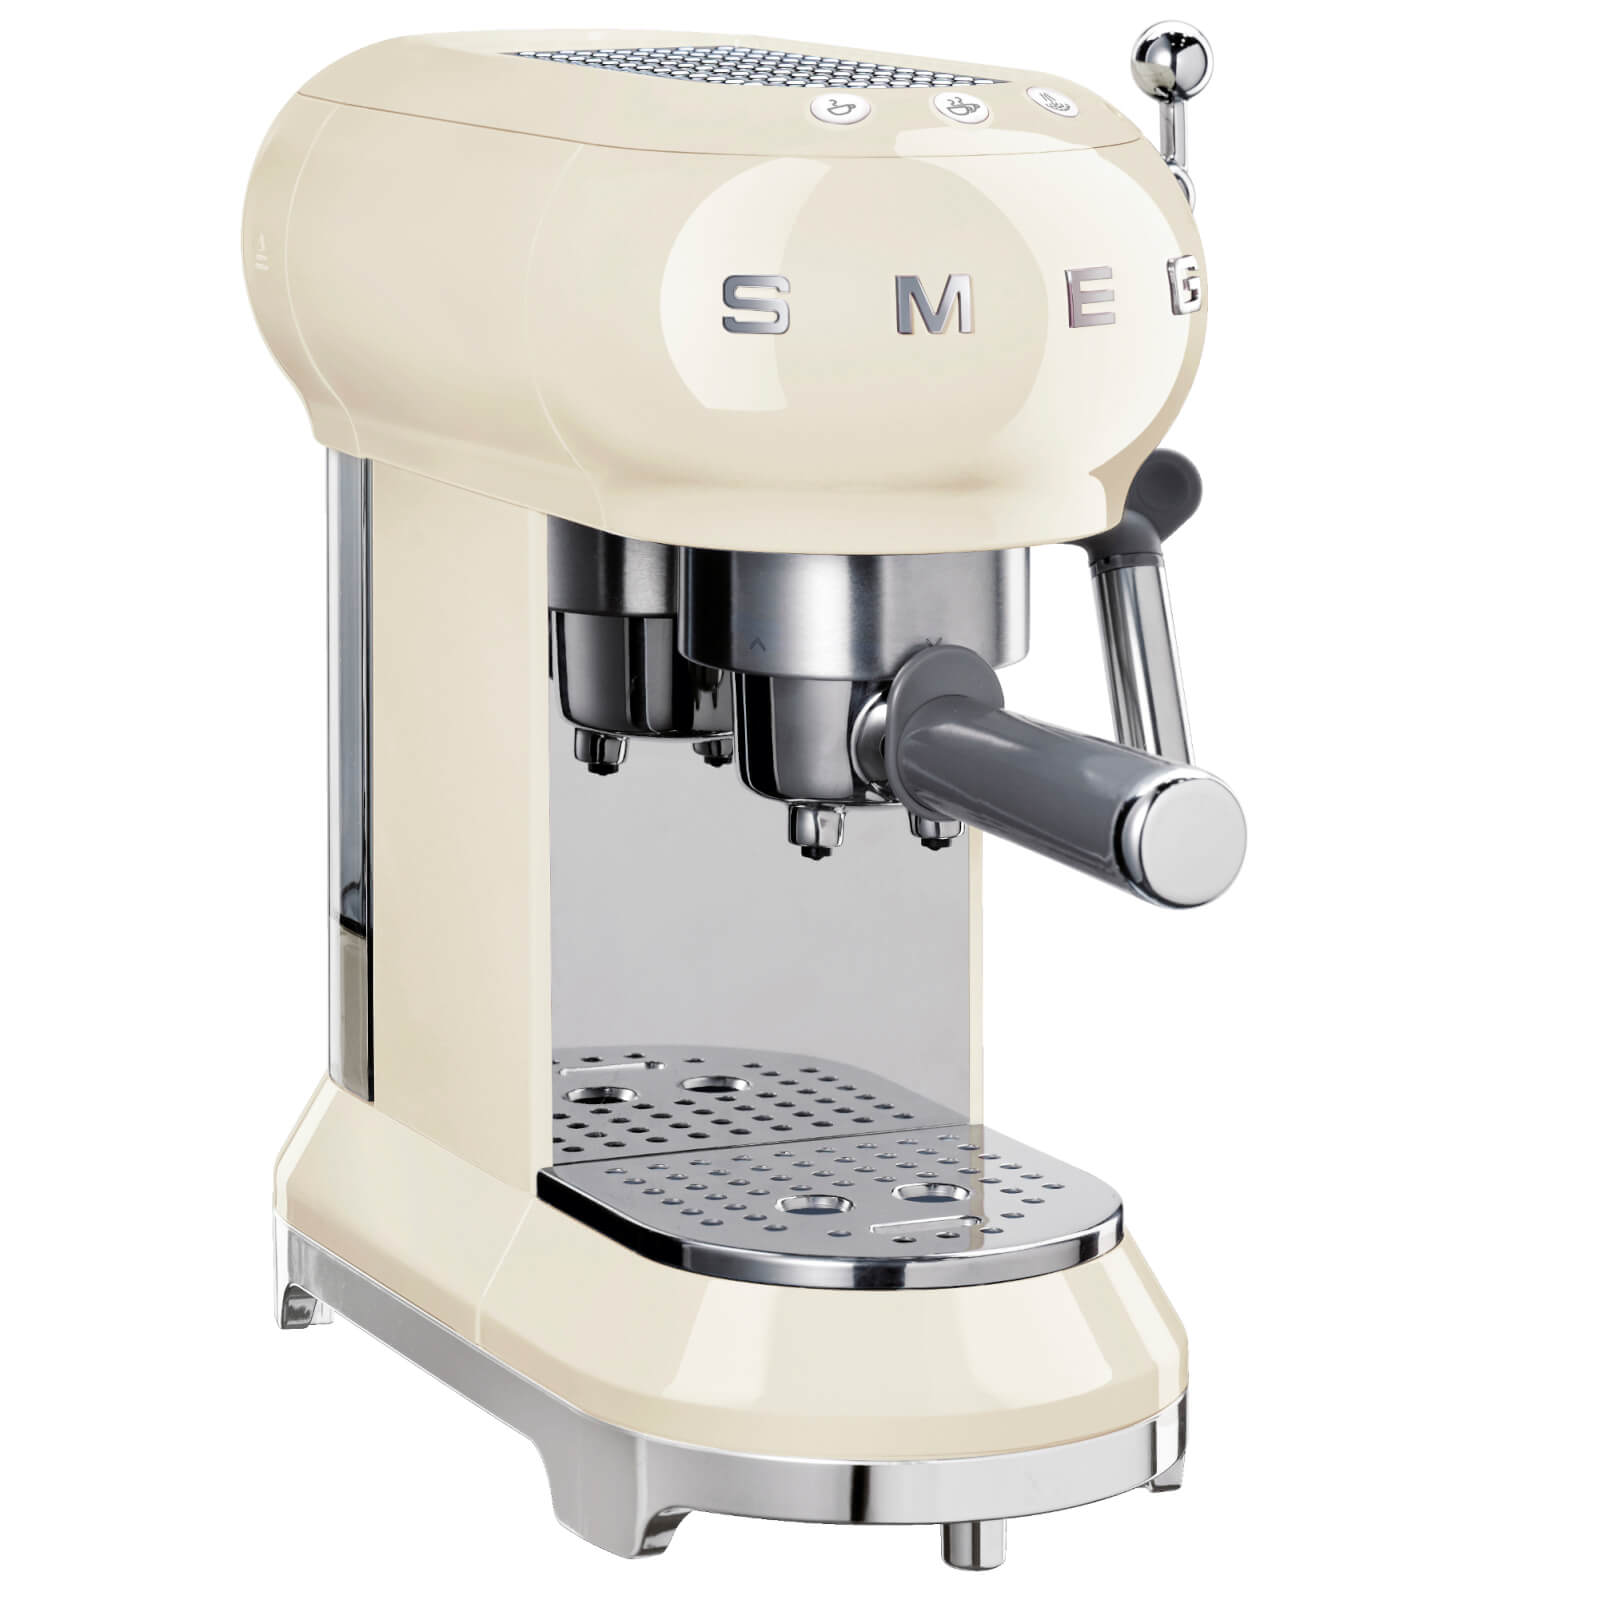 Smeg ECF01CRUK Espresso Machine - Cream